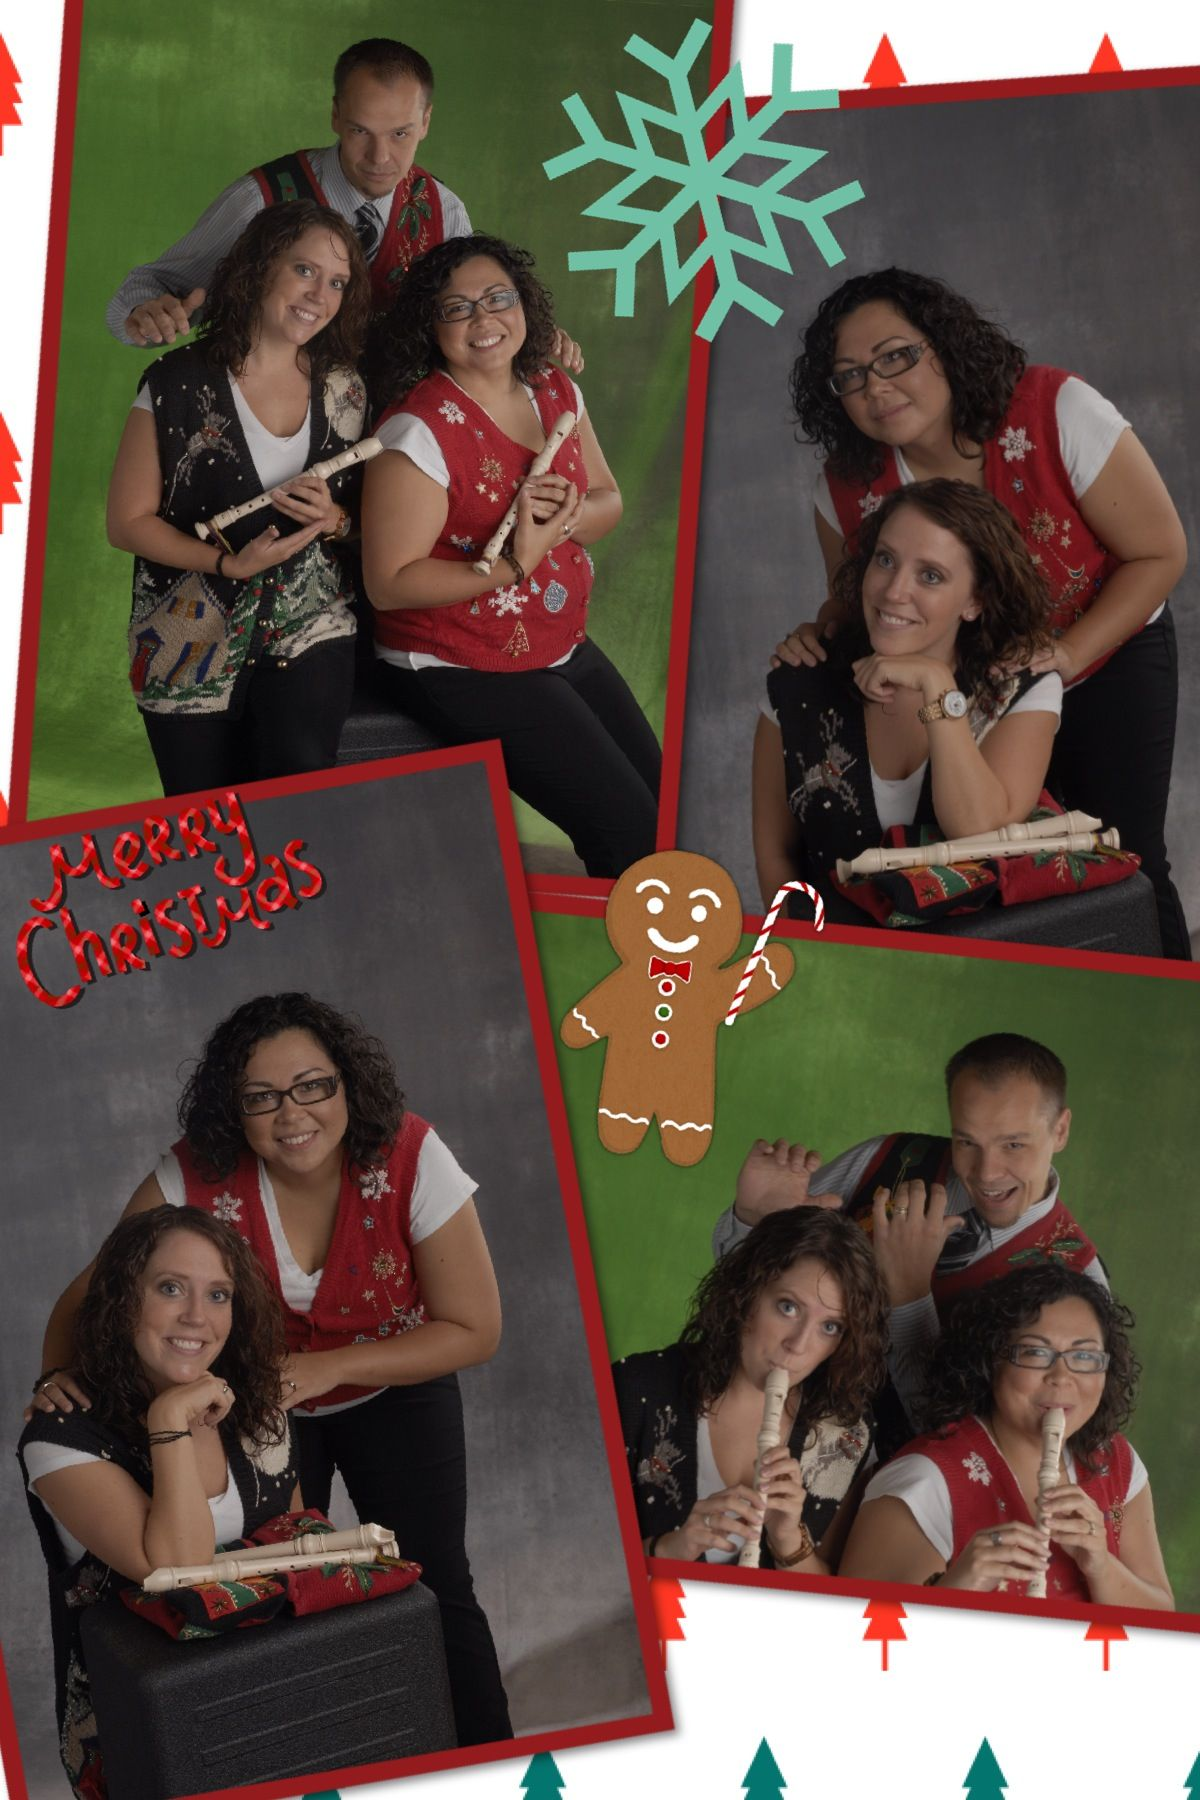 Christmas wishes from Recorder Club '88!